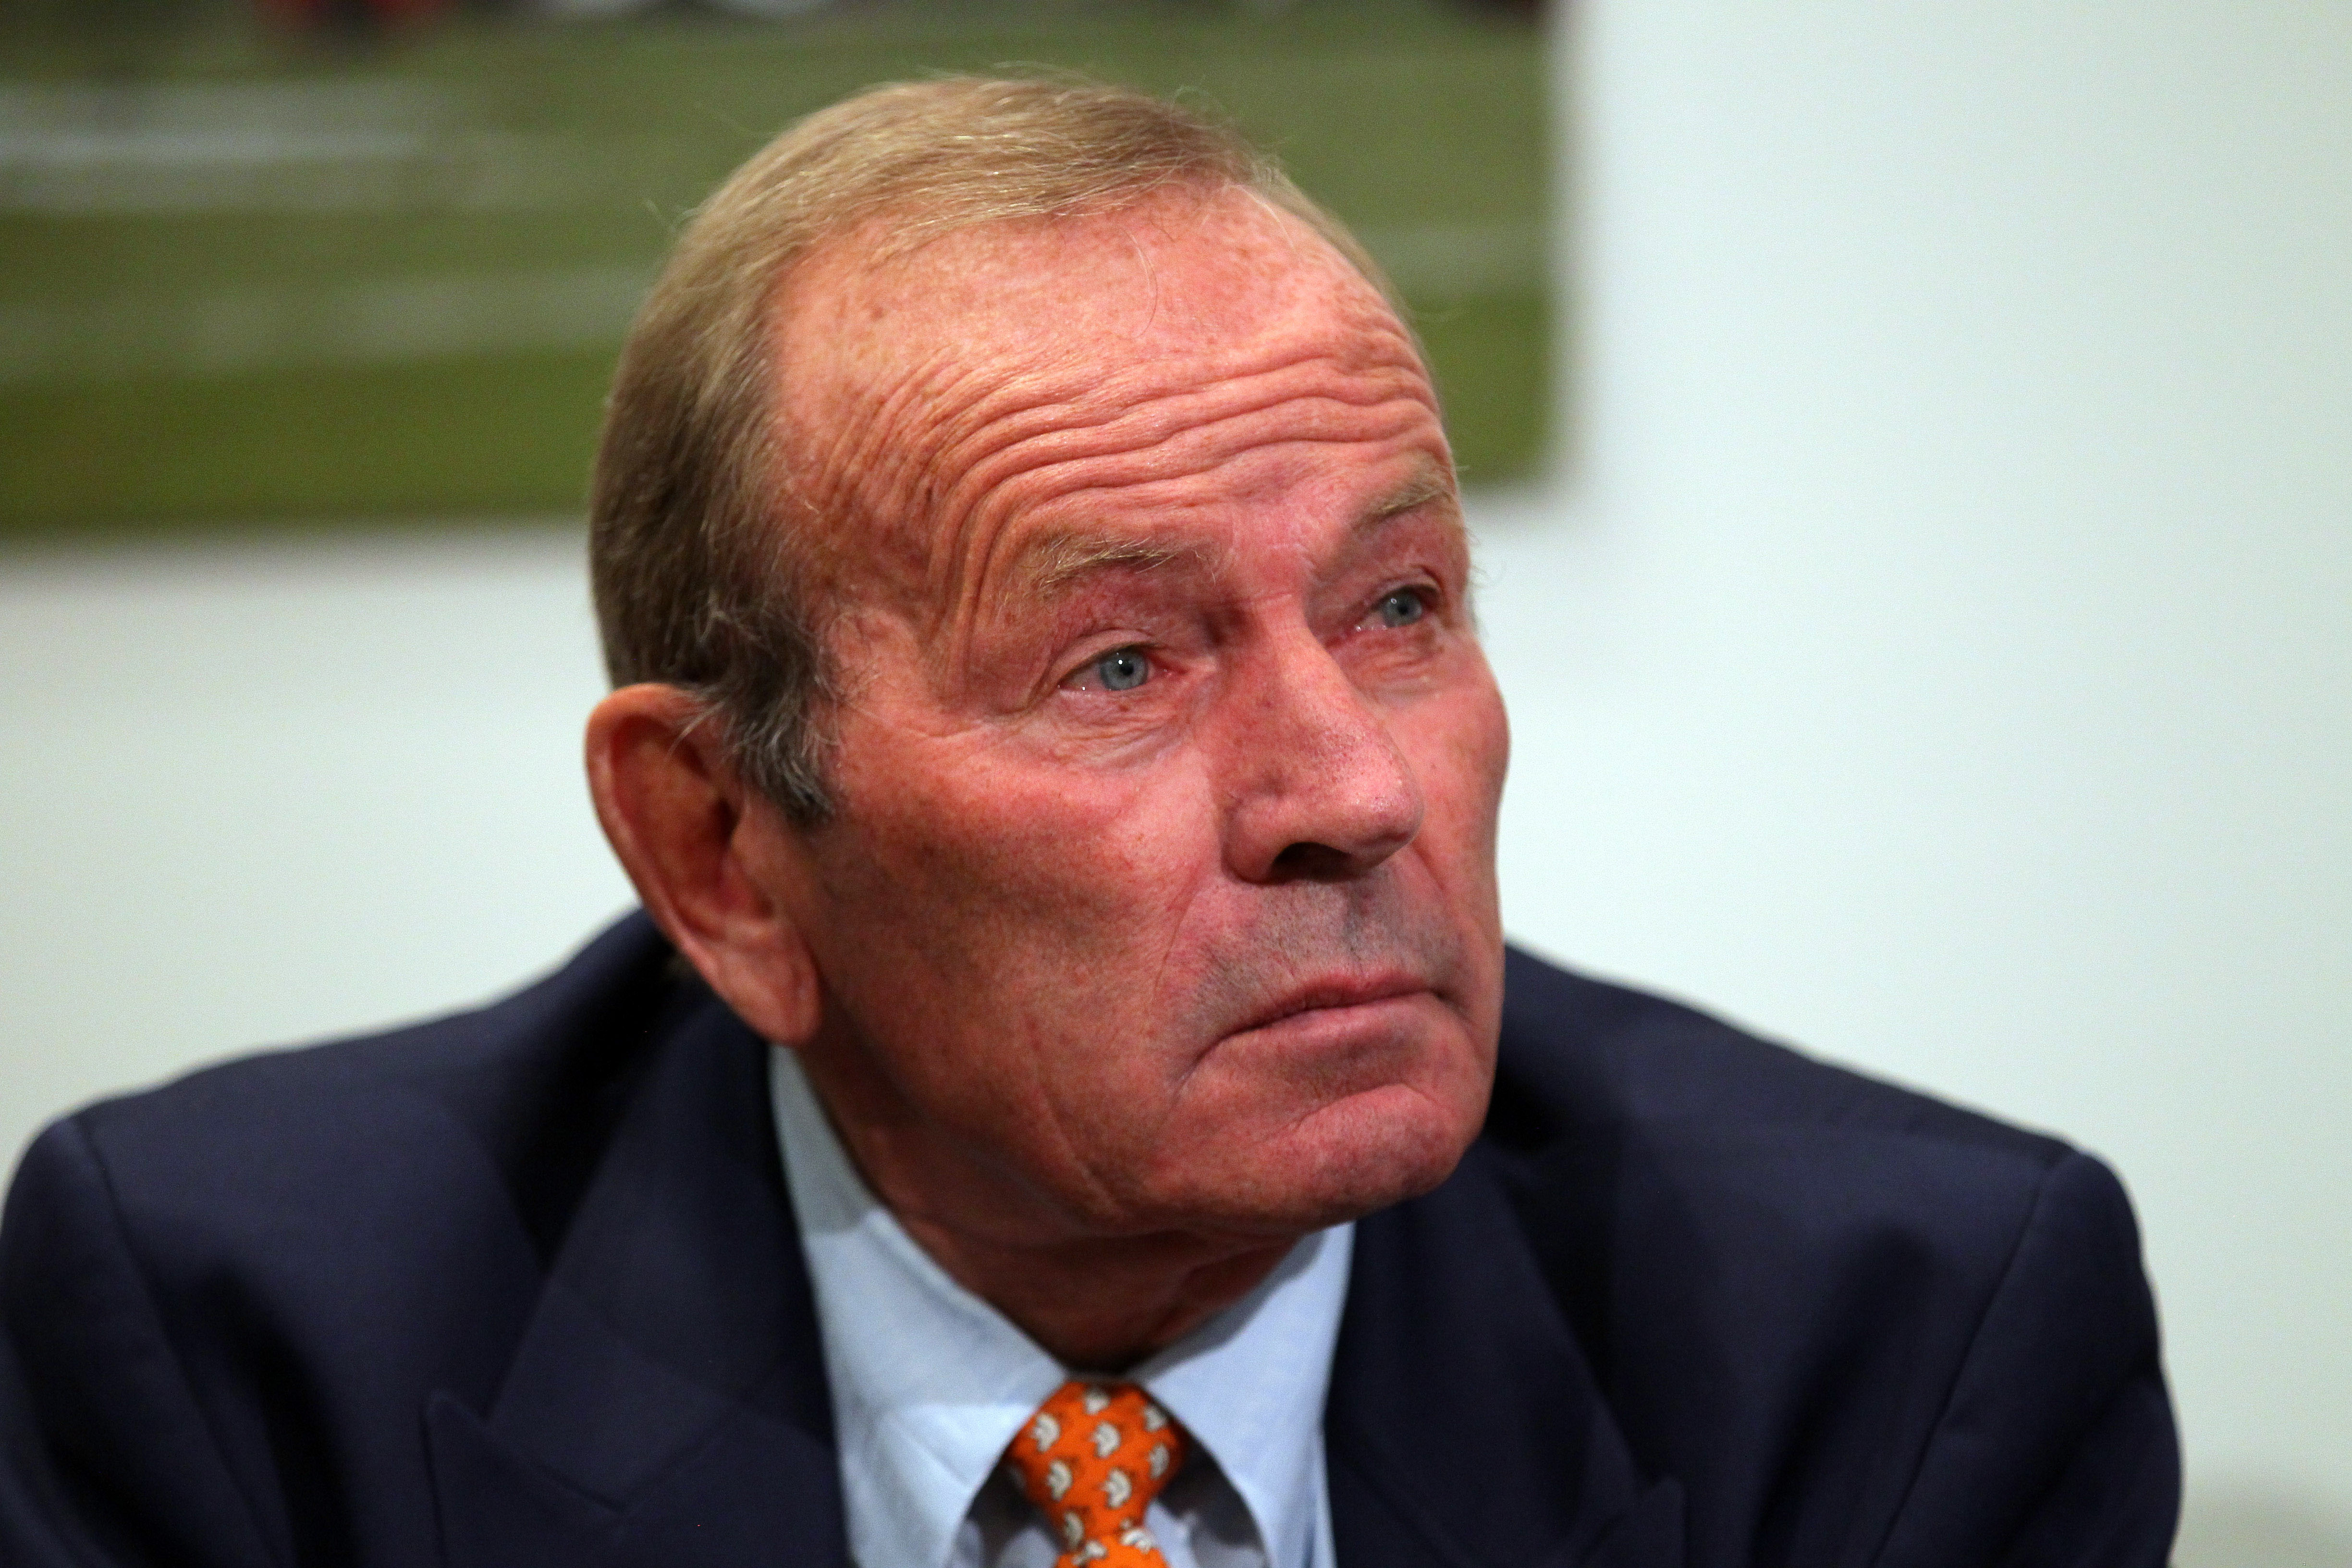 Majority owner, president, and CEO Pat Bowlen of the Denver Broncos watches as quarterback Peyton Manning speaks during a news conference announcing Manning's contract with the Denver Broncos in the team meeting room at the Paul D. Bowlen Memorial Broncos Centre on March 20, 2012 in Englewood.  (Photo by Doug Pensinger/Getty Images)